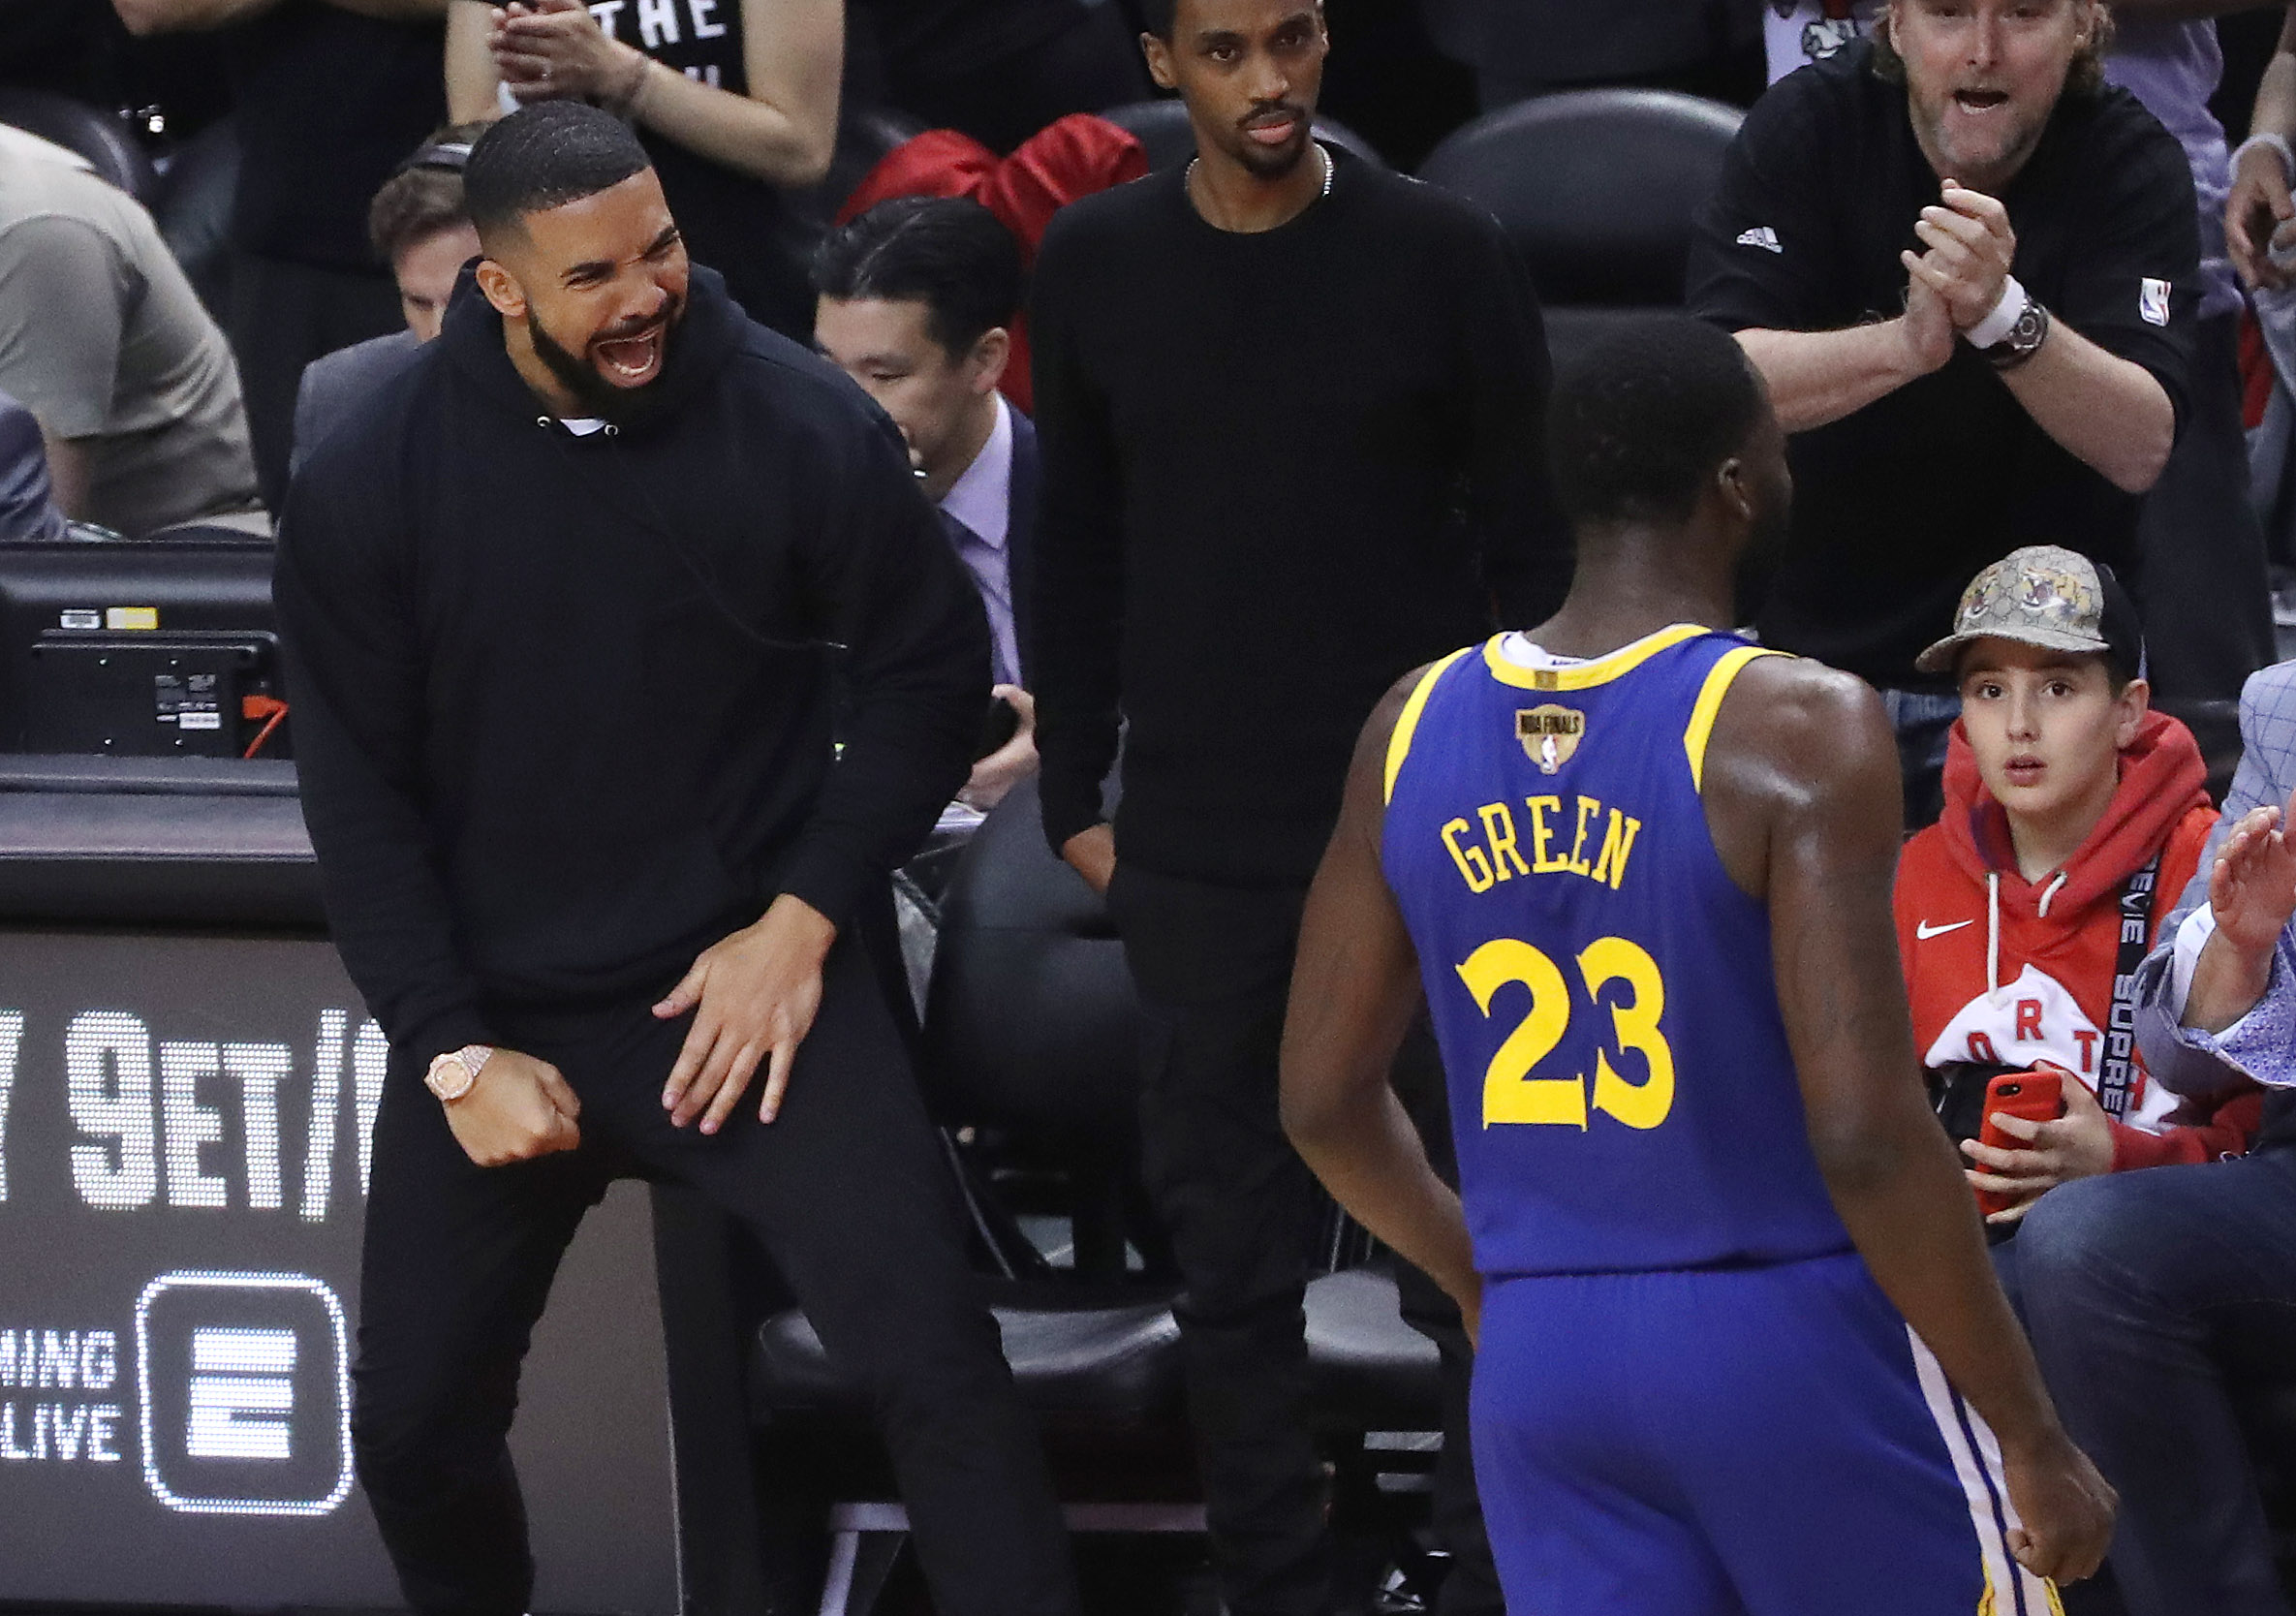 The 10 Best Moments of the 2019 NBA Playoffs